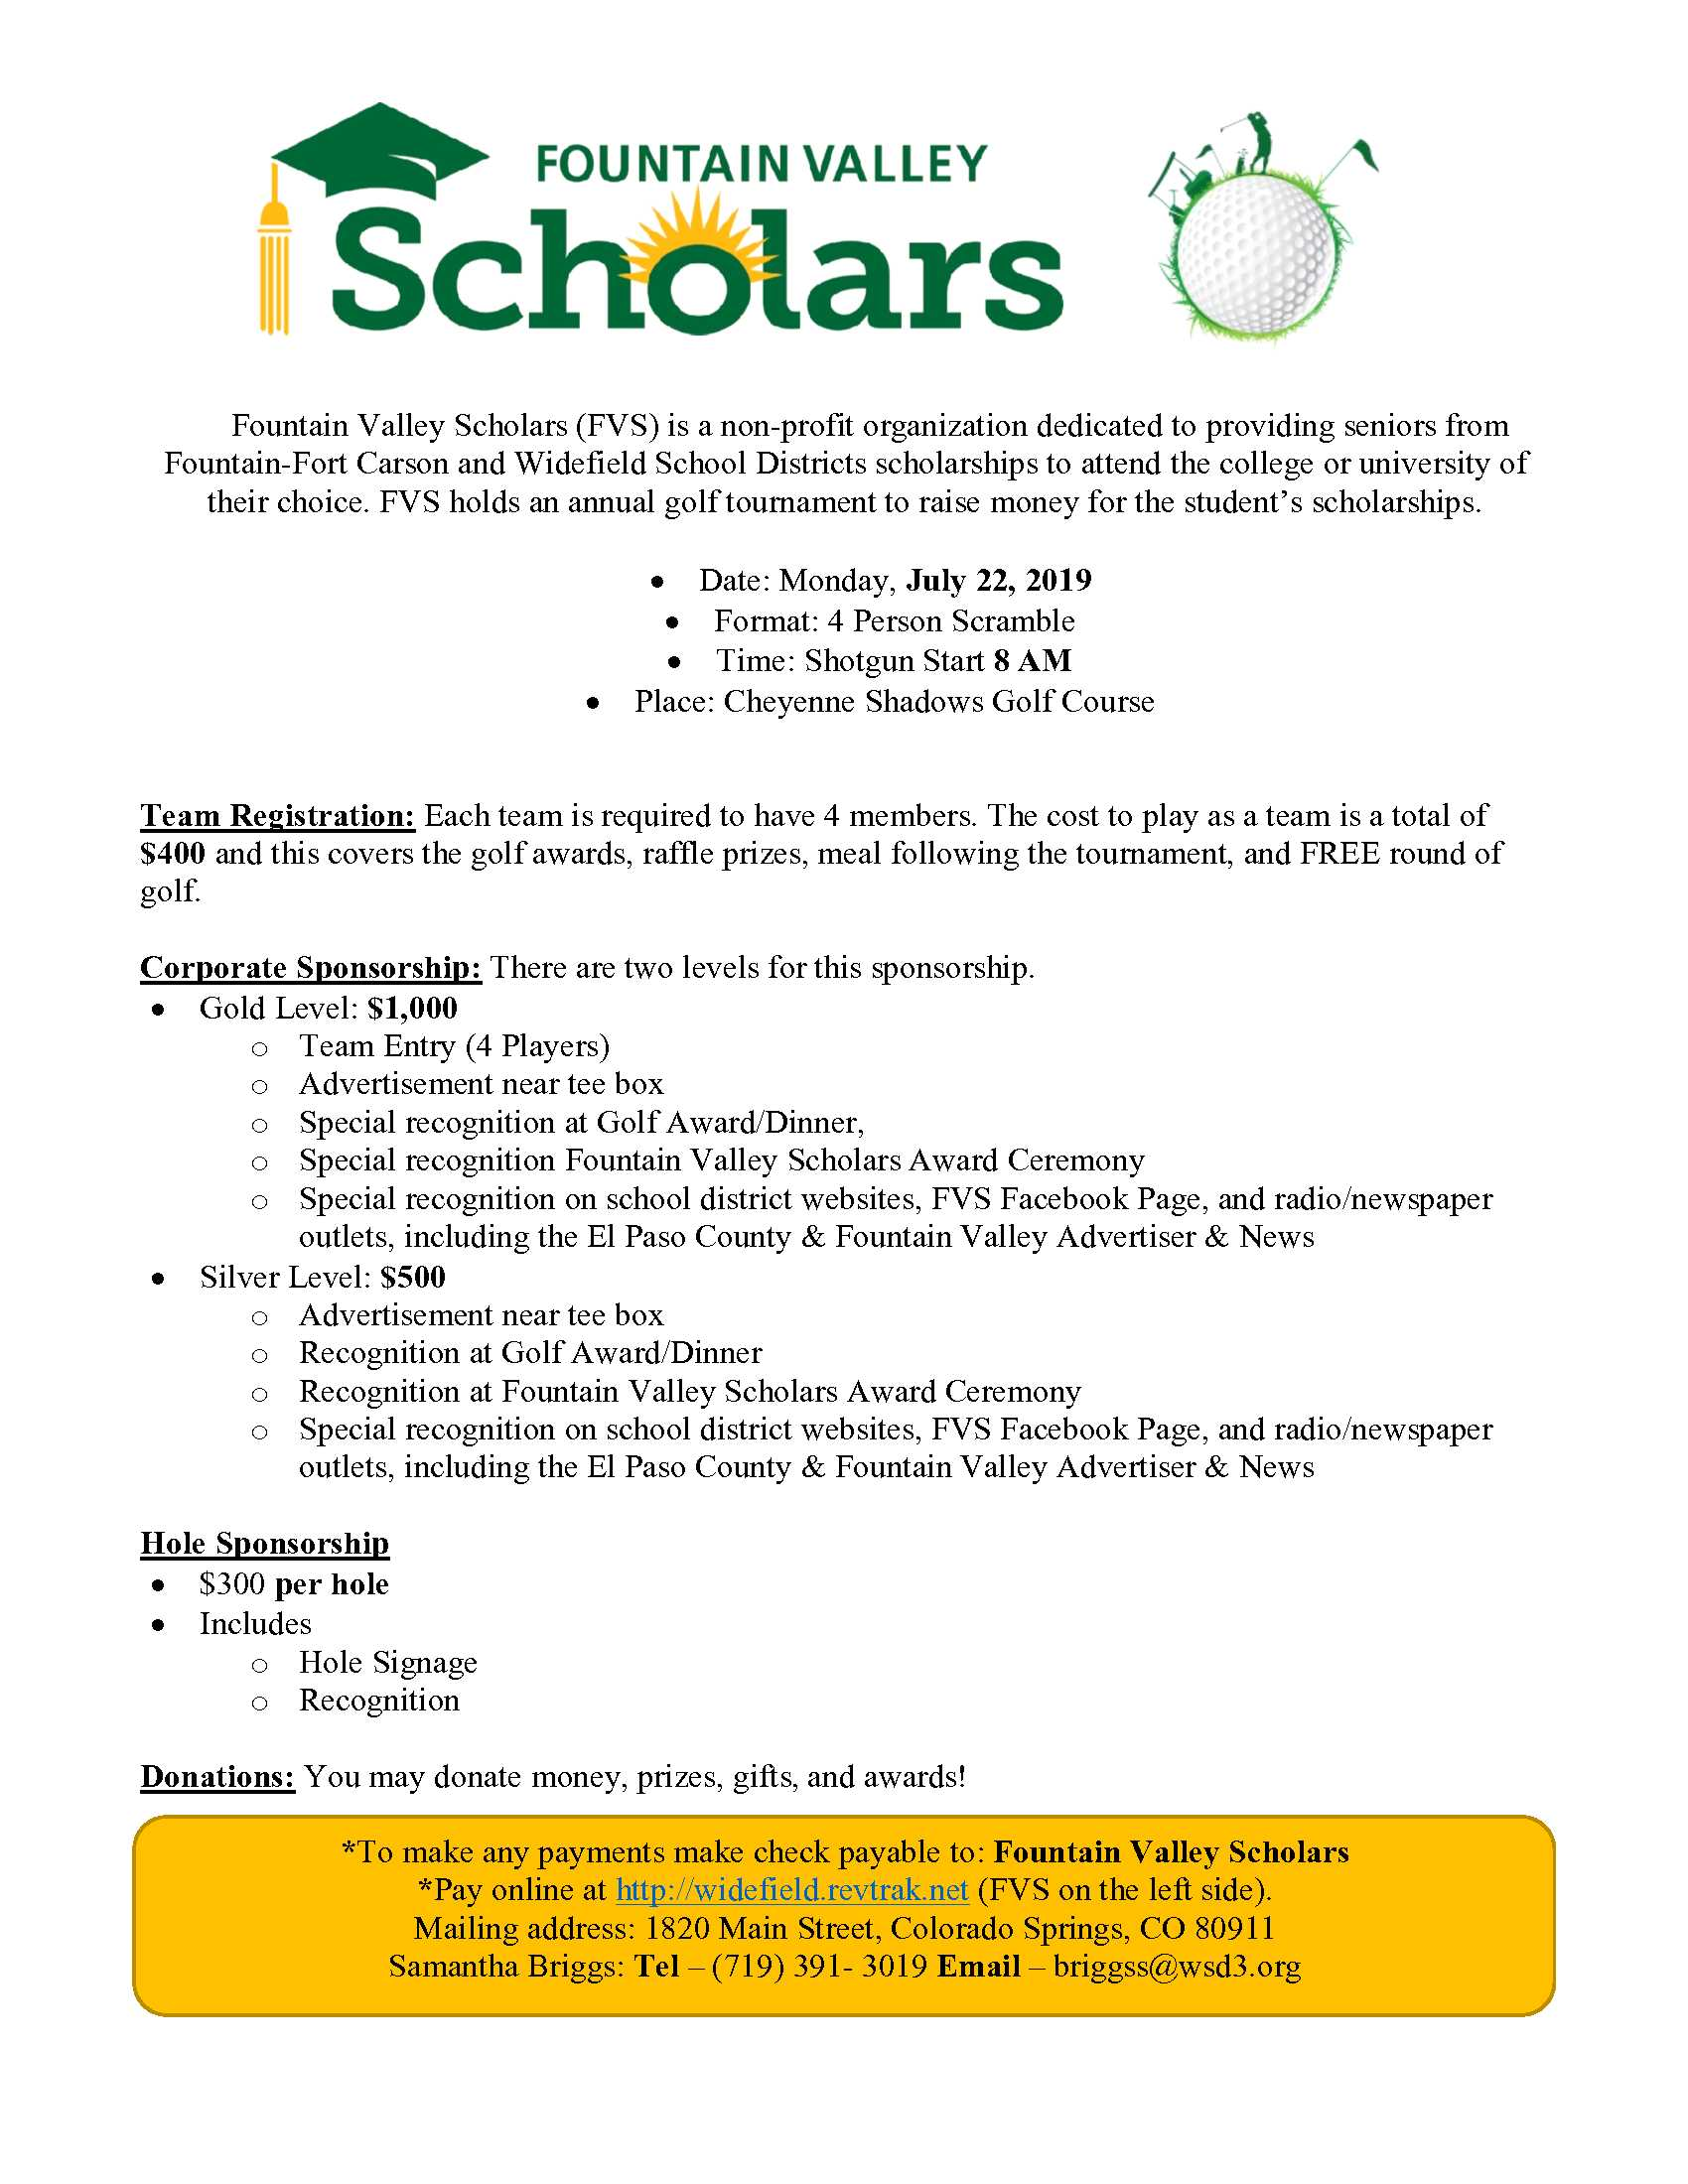 Fountain Valley Scholars Golf Tournament